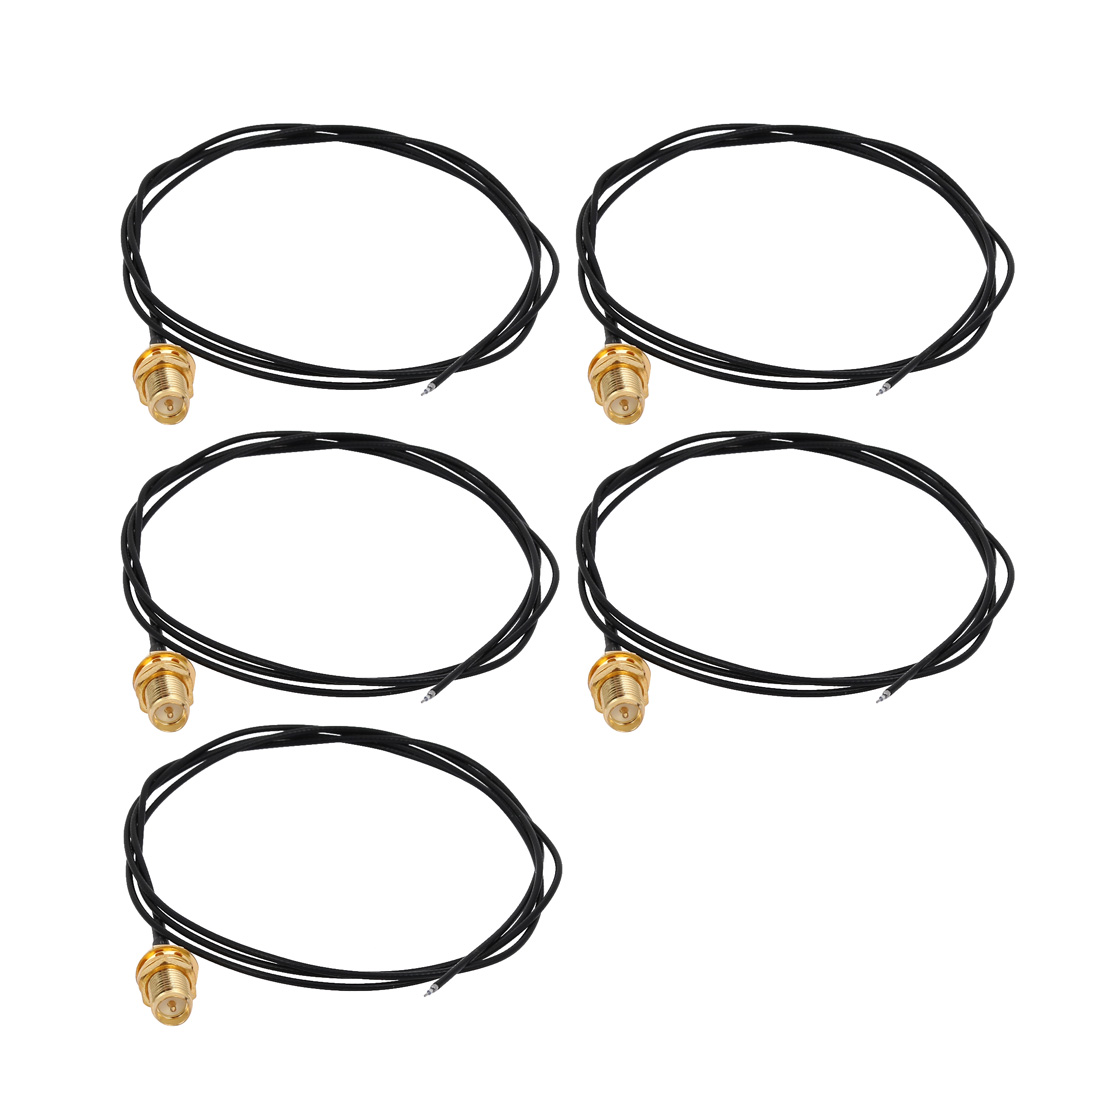 5pcs RF1.13 Soldering Wire SMA Male Connector Antenna WiFi Pigtail Cable 80cm Long